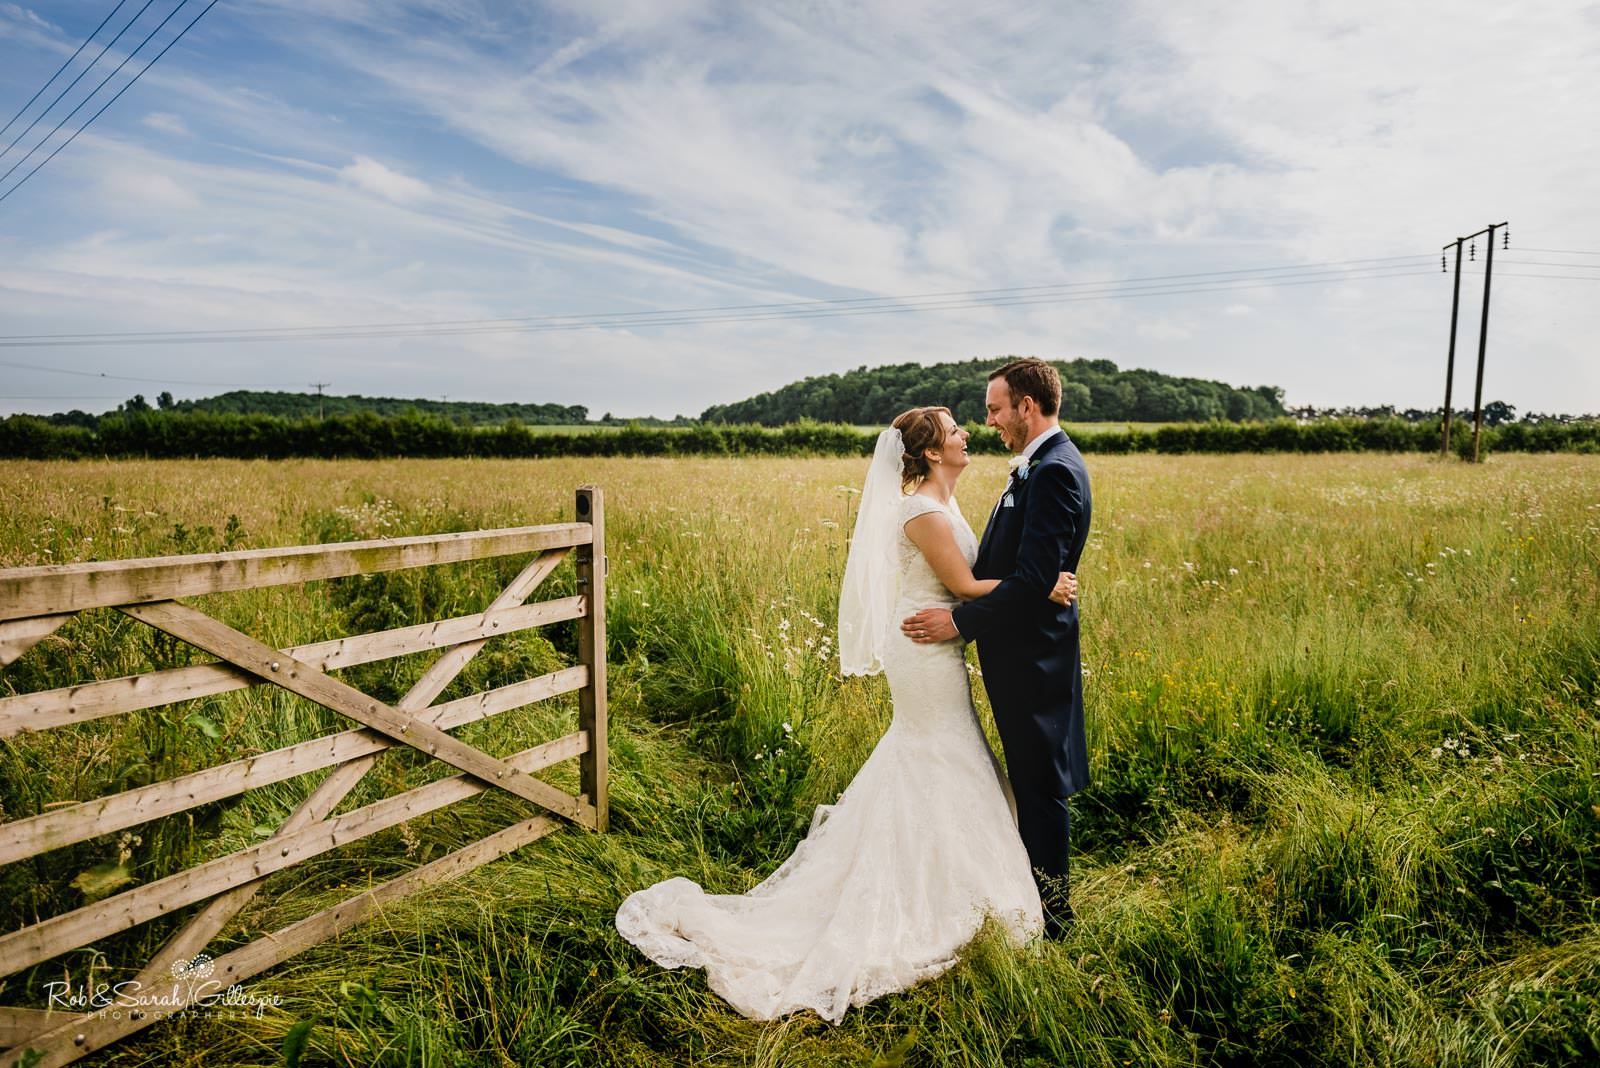 Natural and relaxed couple photography at Swallows Nest Barn